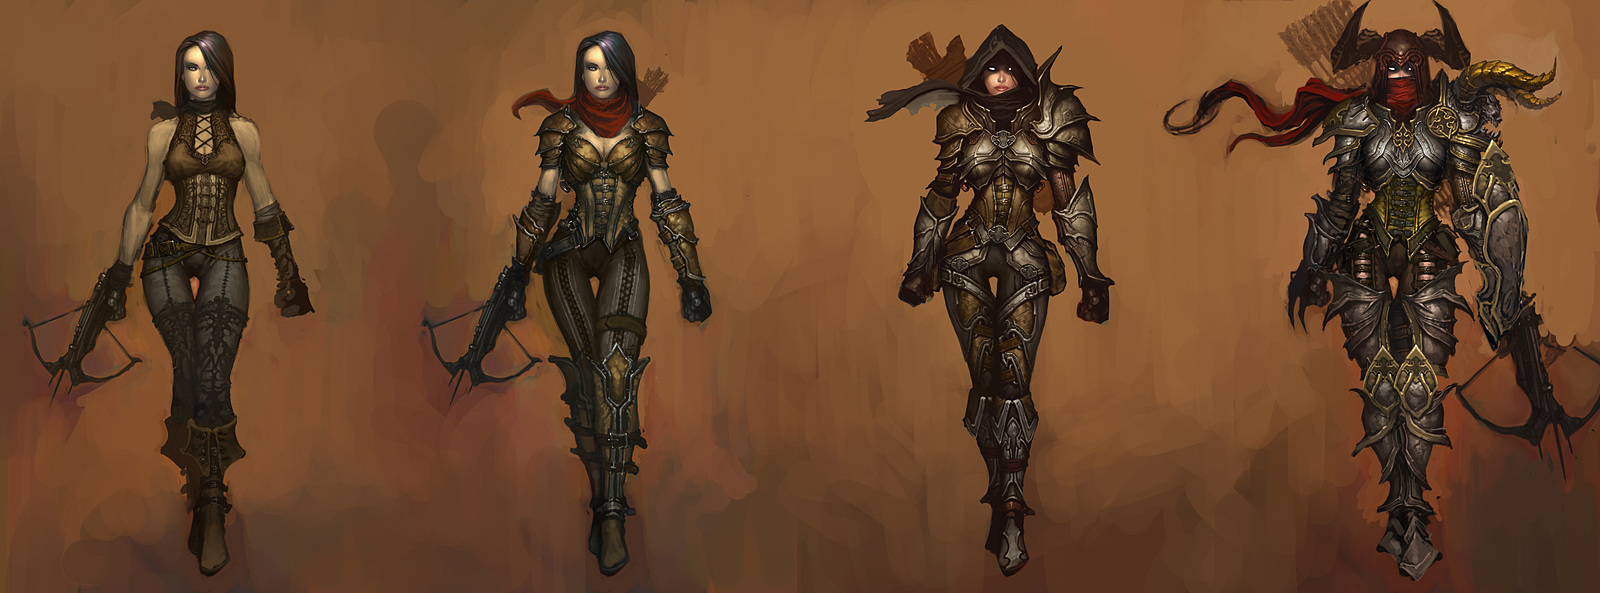 artwork-class-demonhunter03-full